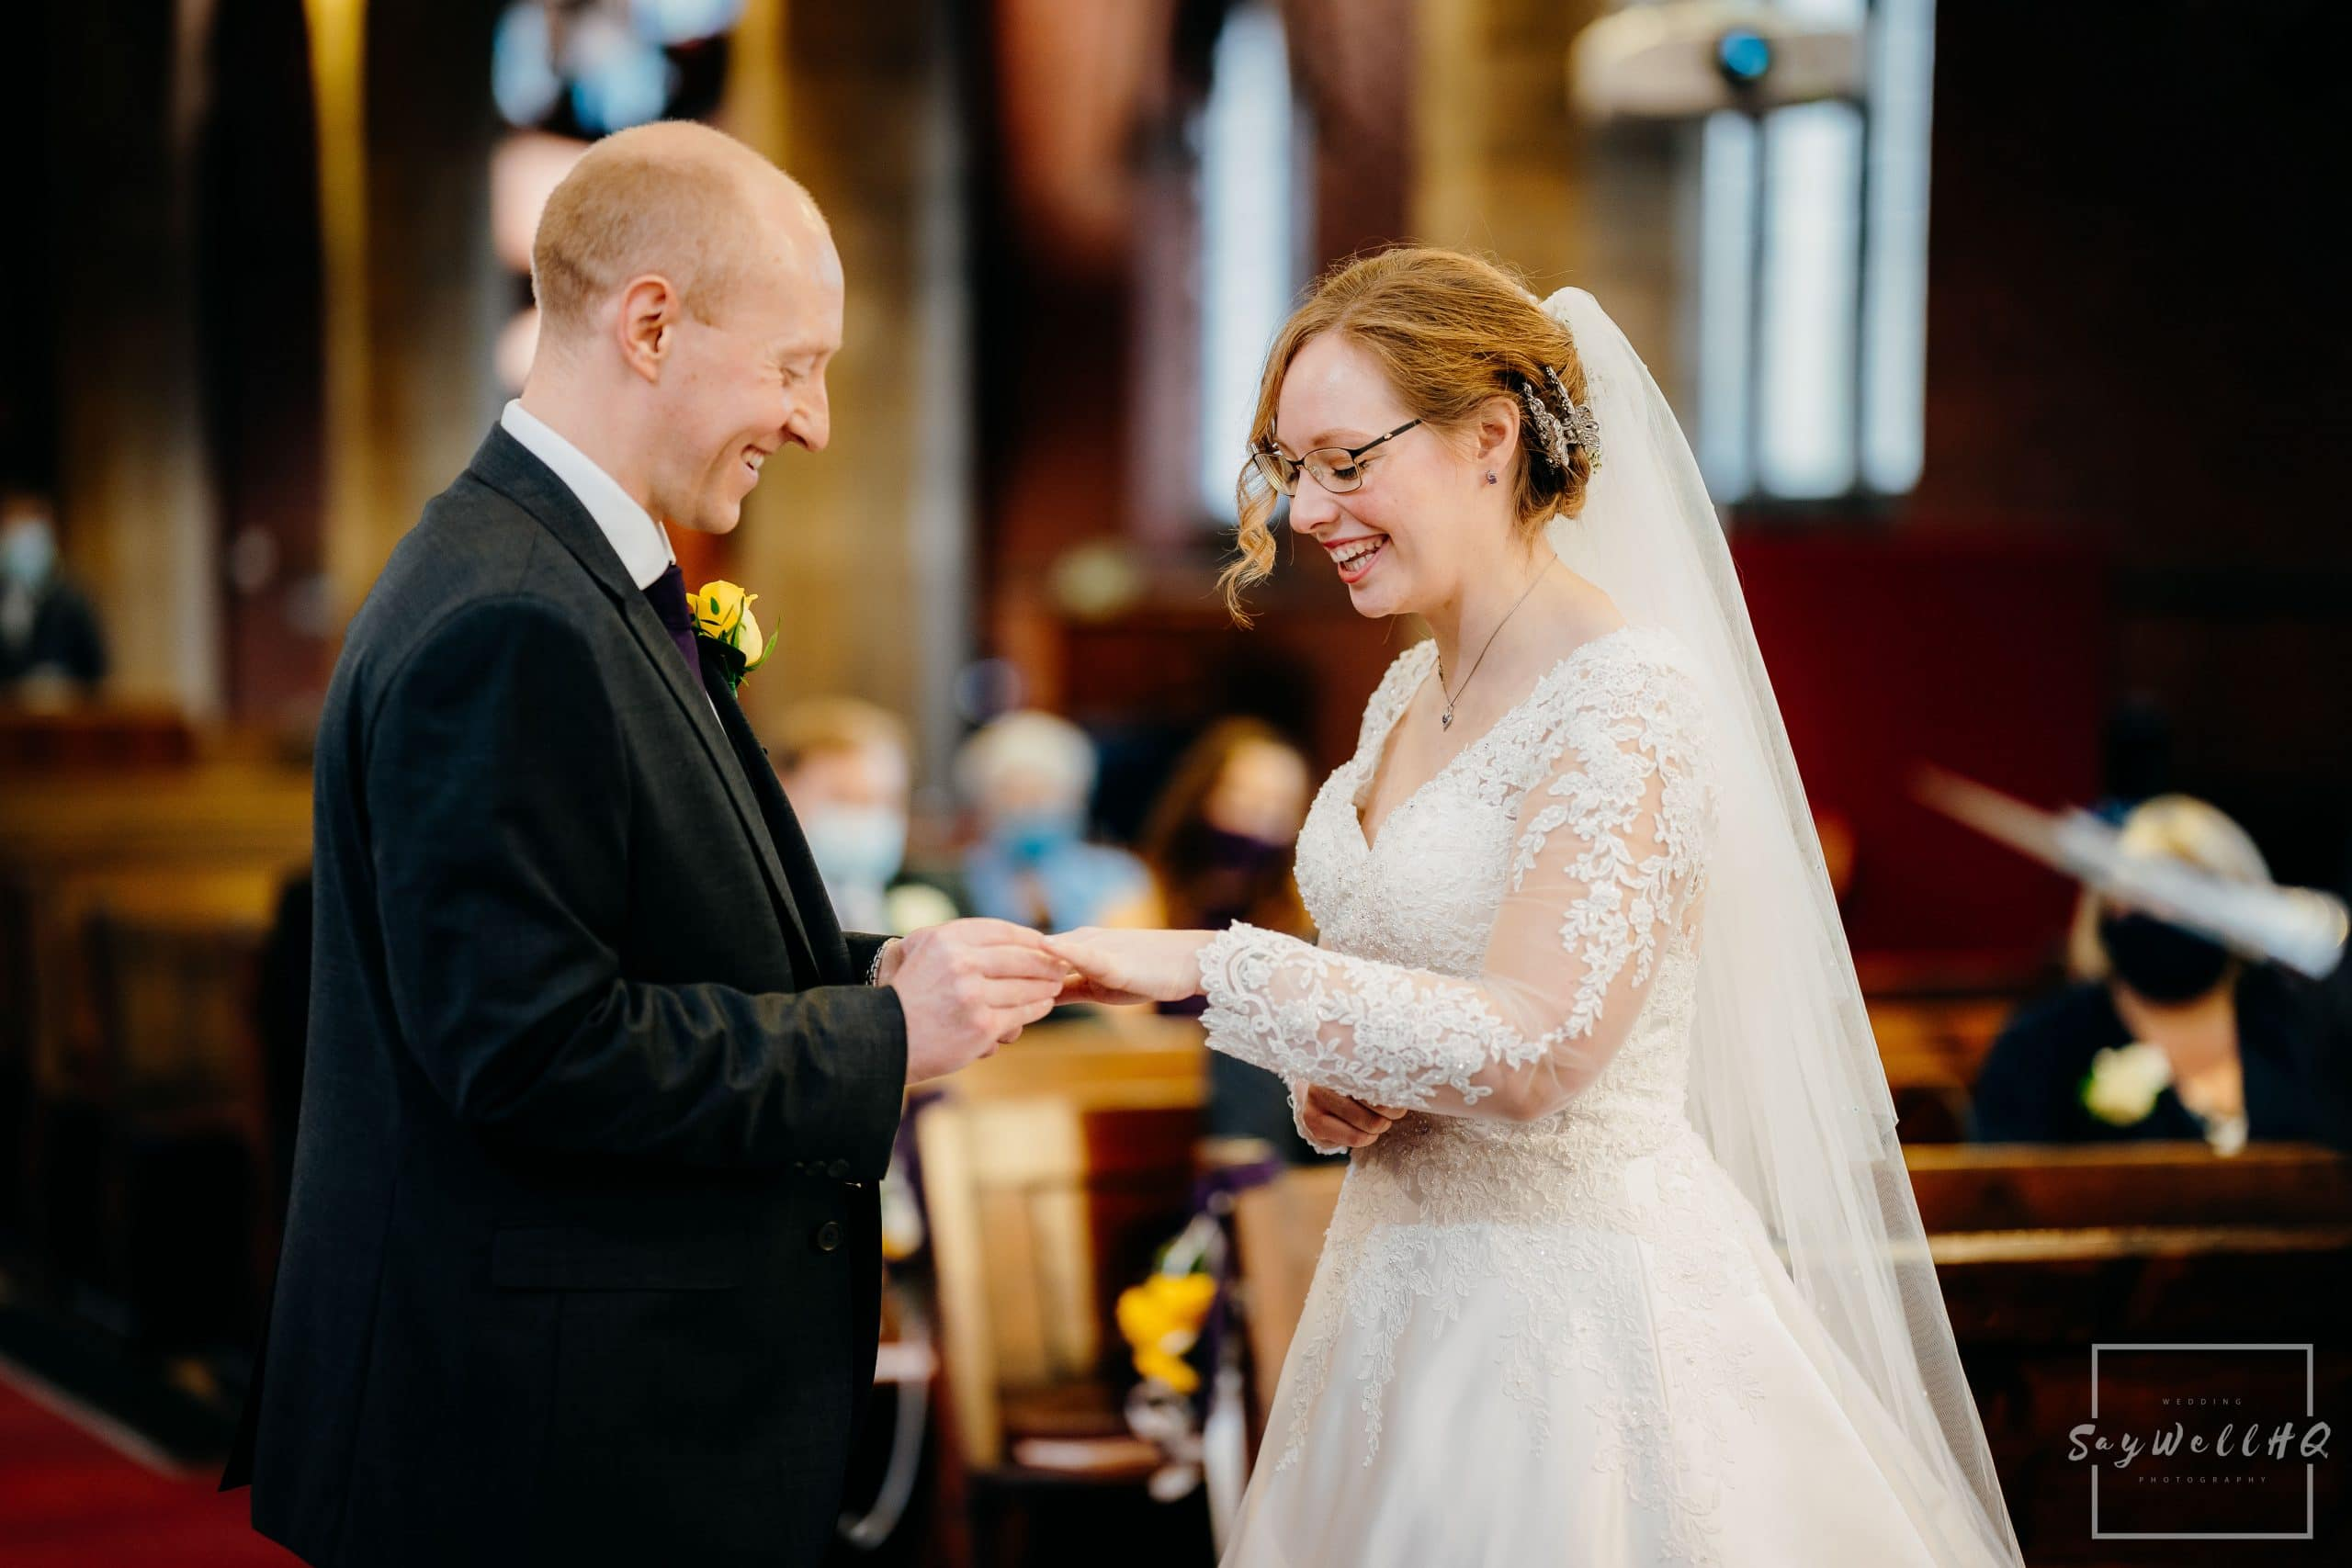 Bride and groom exchange rings at their micro wedding at St Judes Church in Mapperley Nottingham